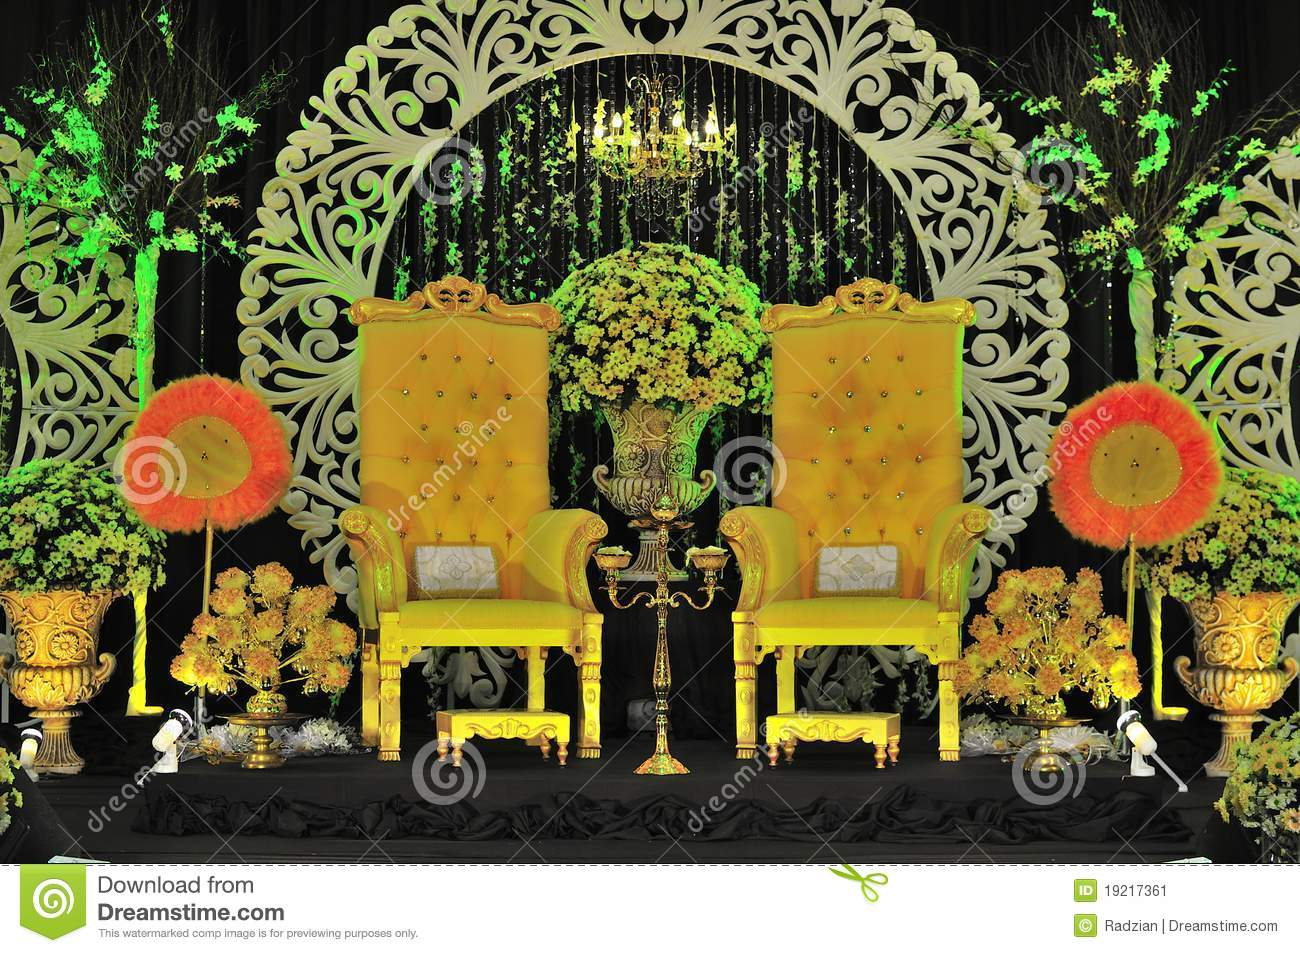 wedding stage chairs amazon.ca chair slip covers malay and decoration stock image